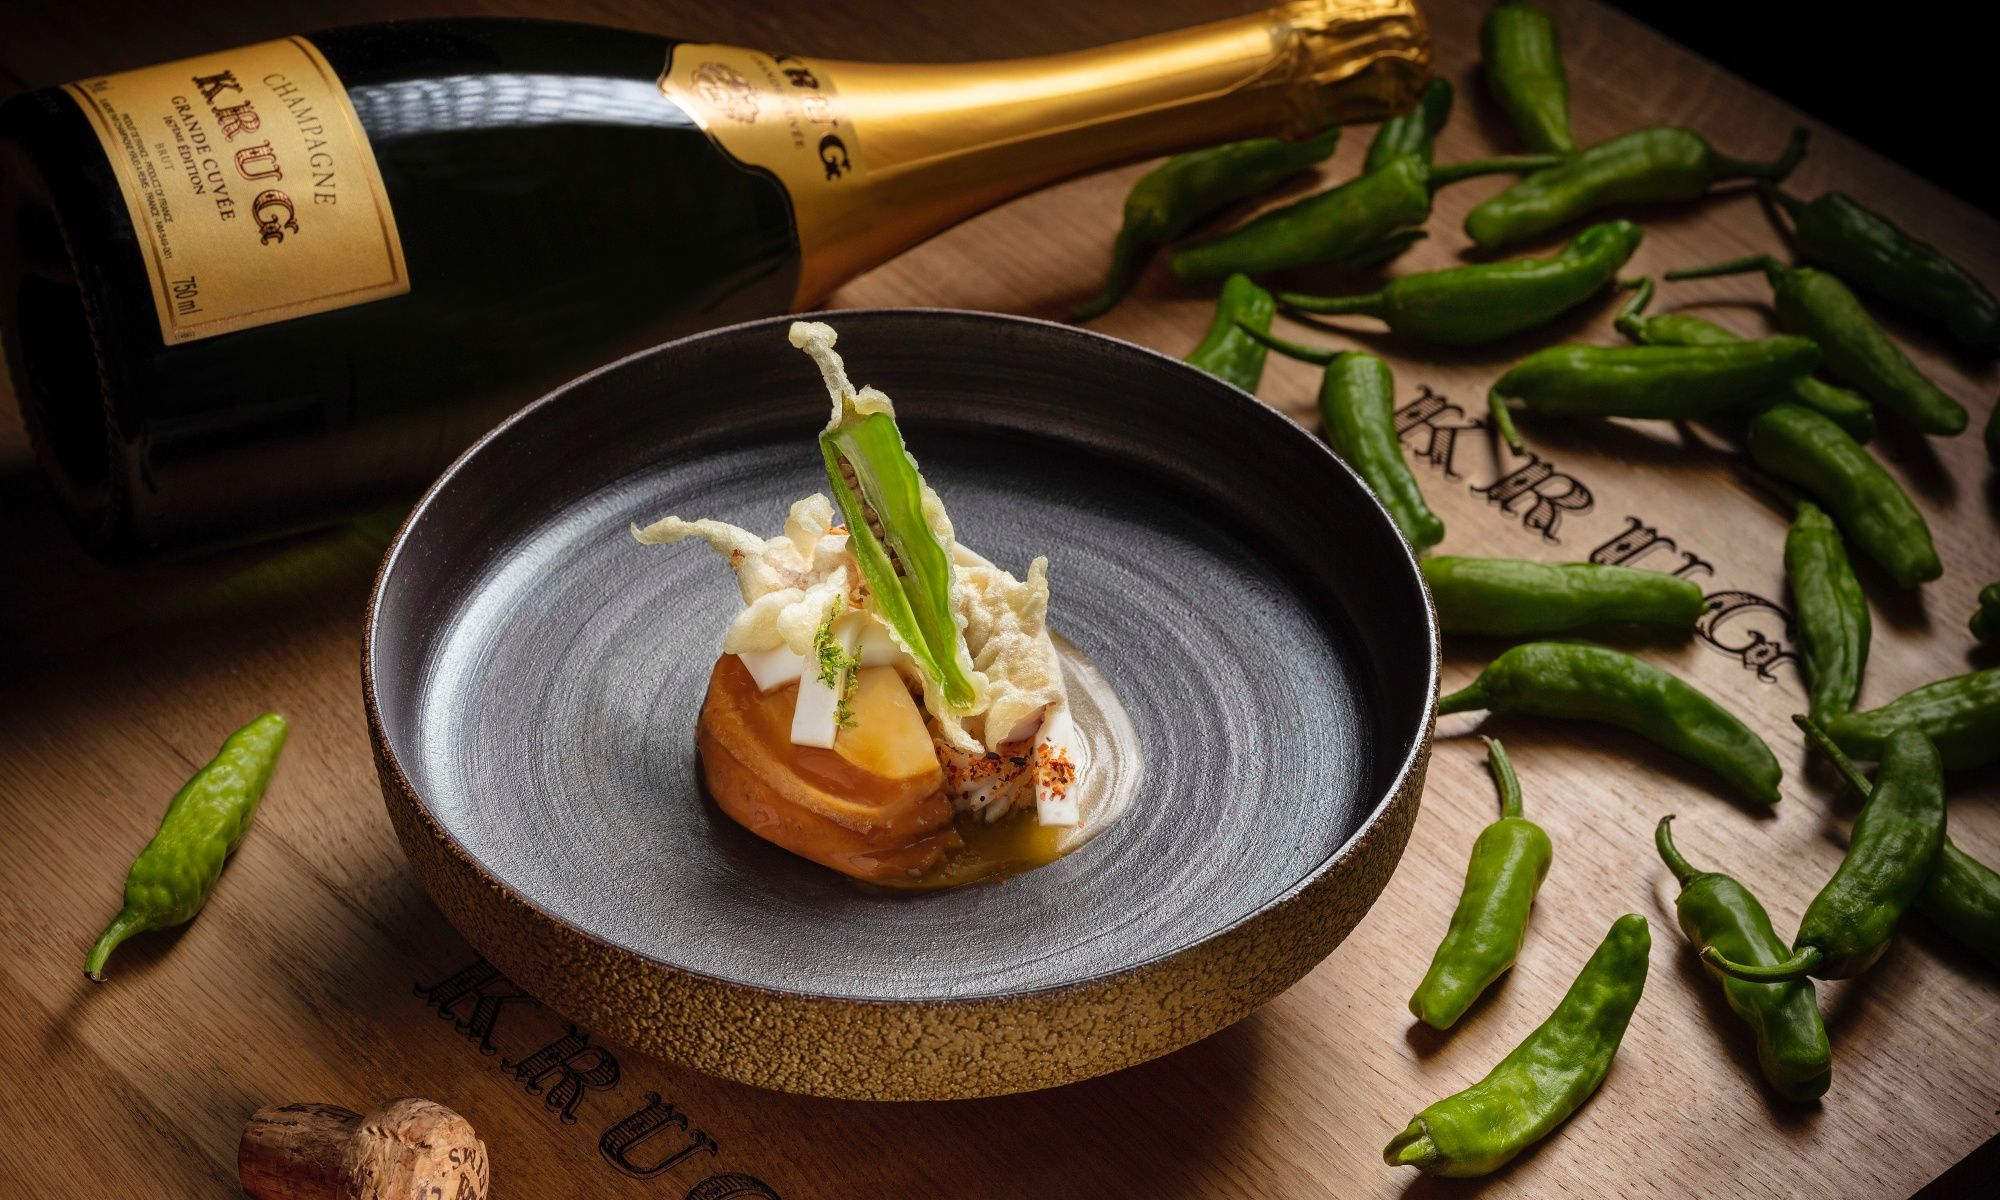 6 Chefs In Hong Kong To Collaborate With Krug Champagne On New Pepper Campaign